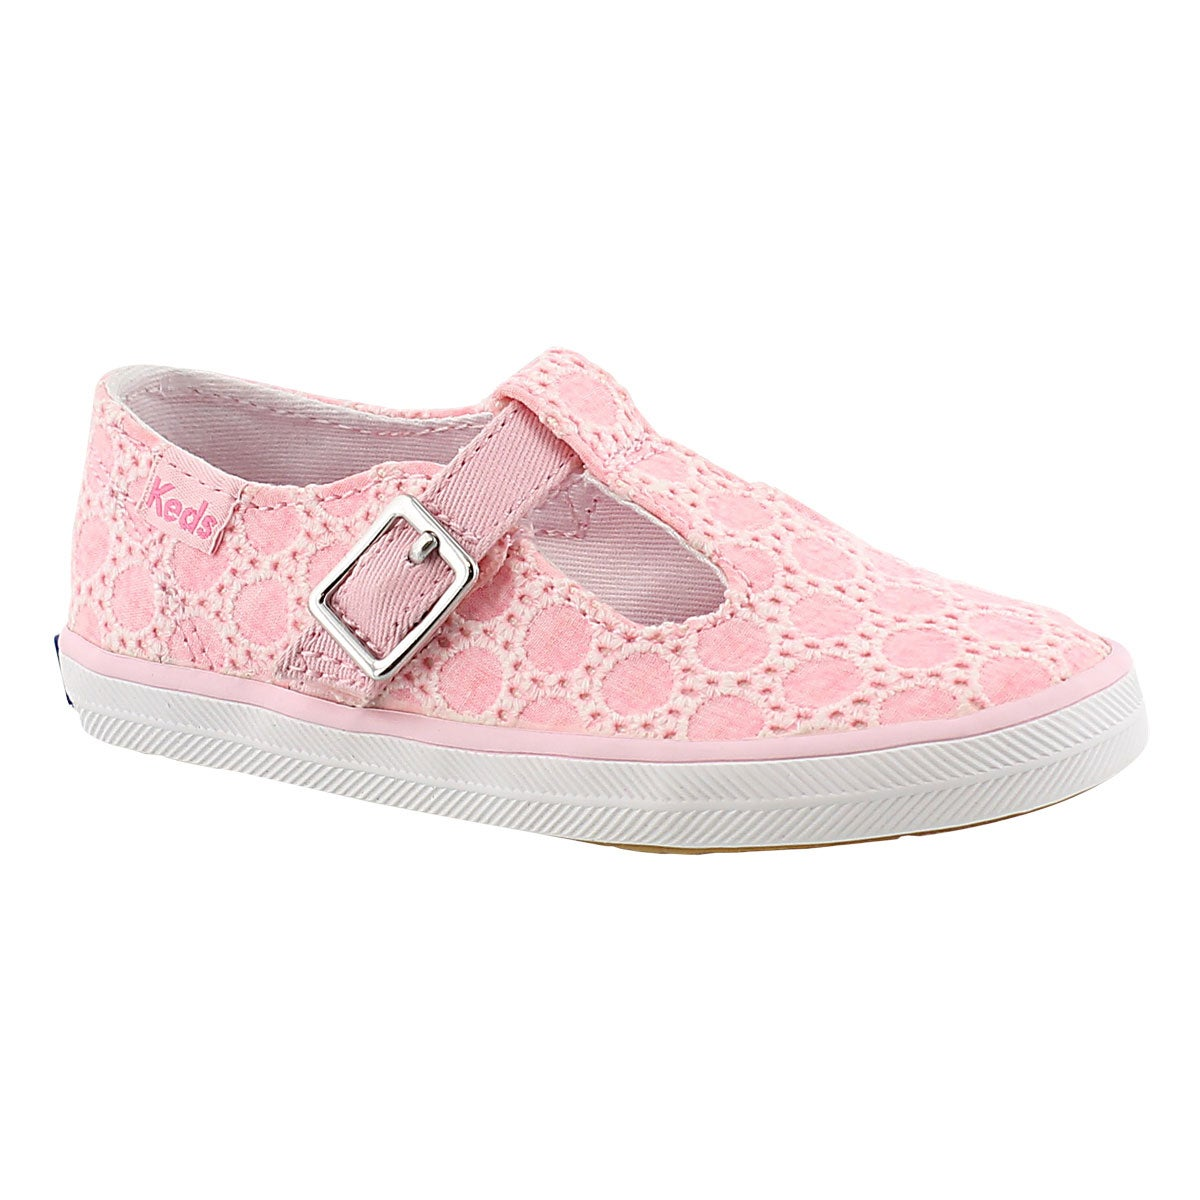 Girls' T-STRAPPY pink casual sneakers